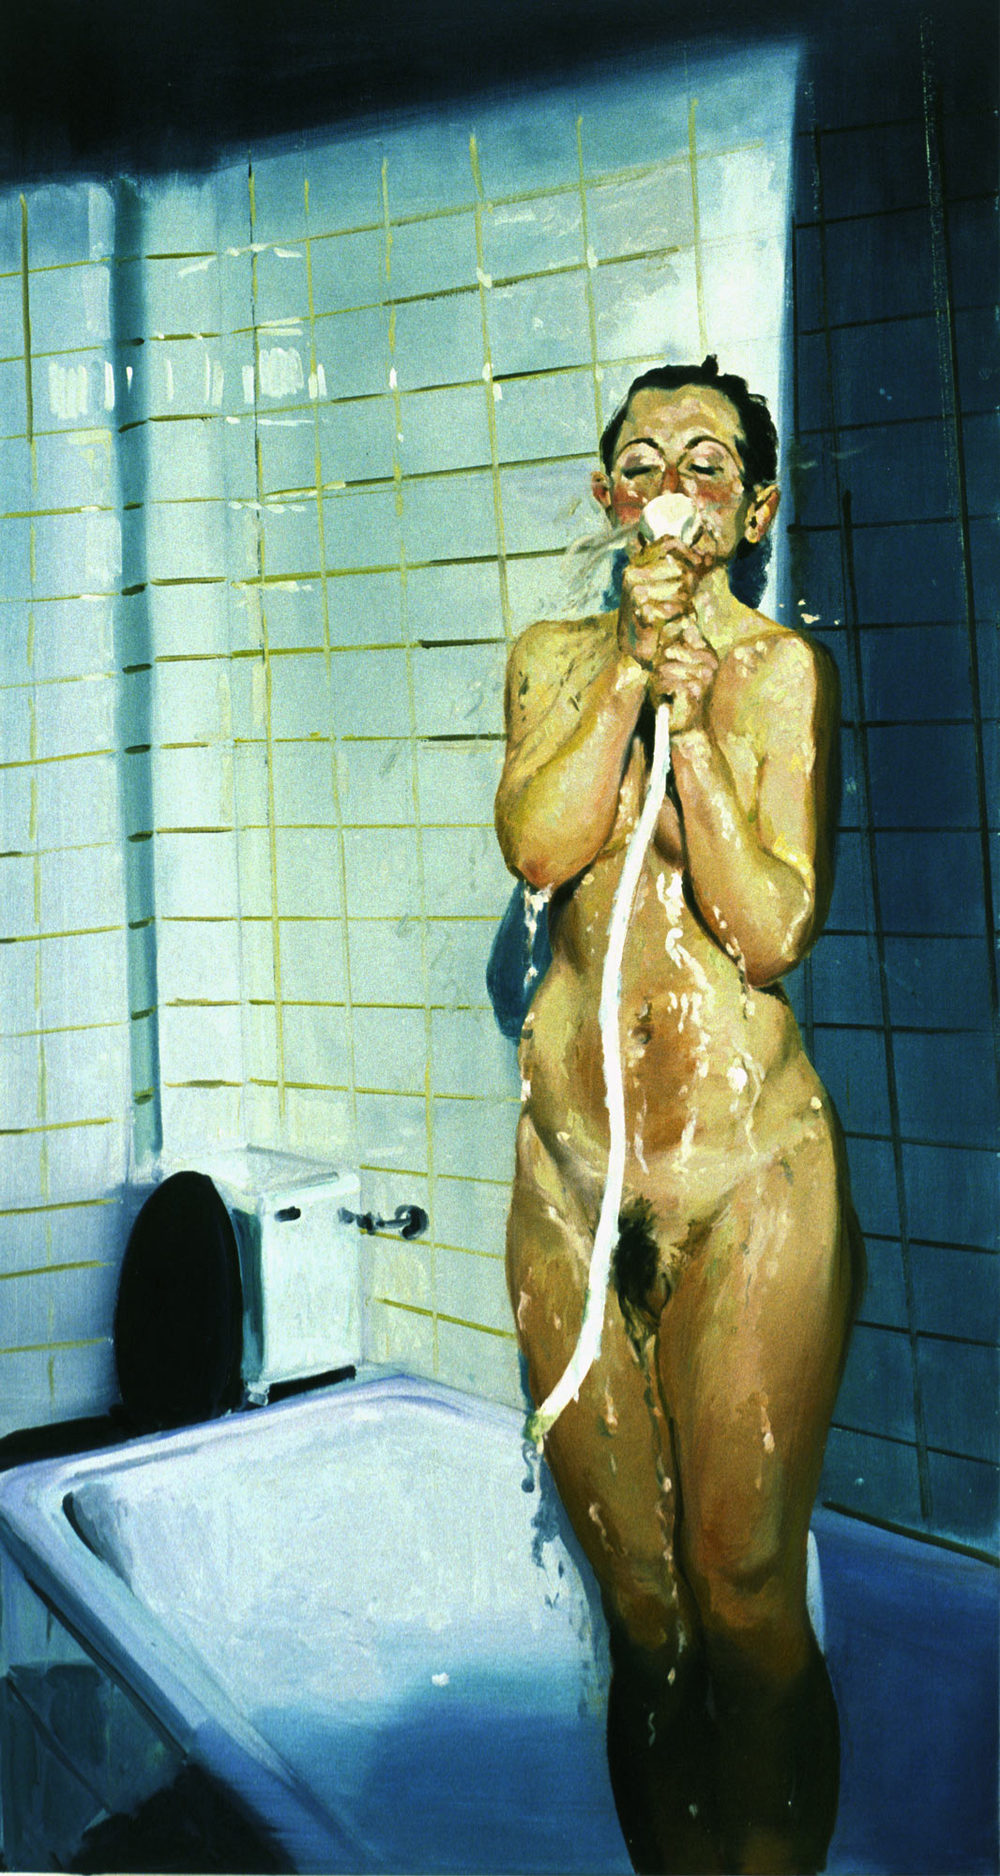 Krefeld Project; Bathroom, Scene#1, 2002.